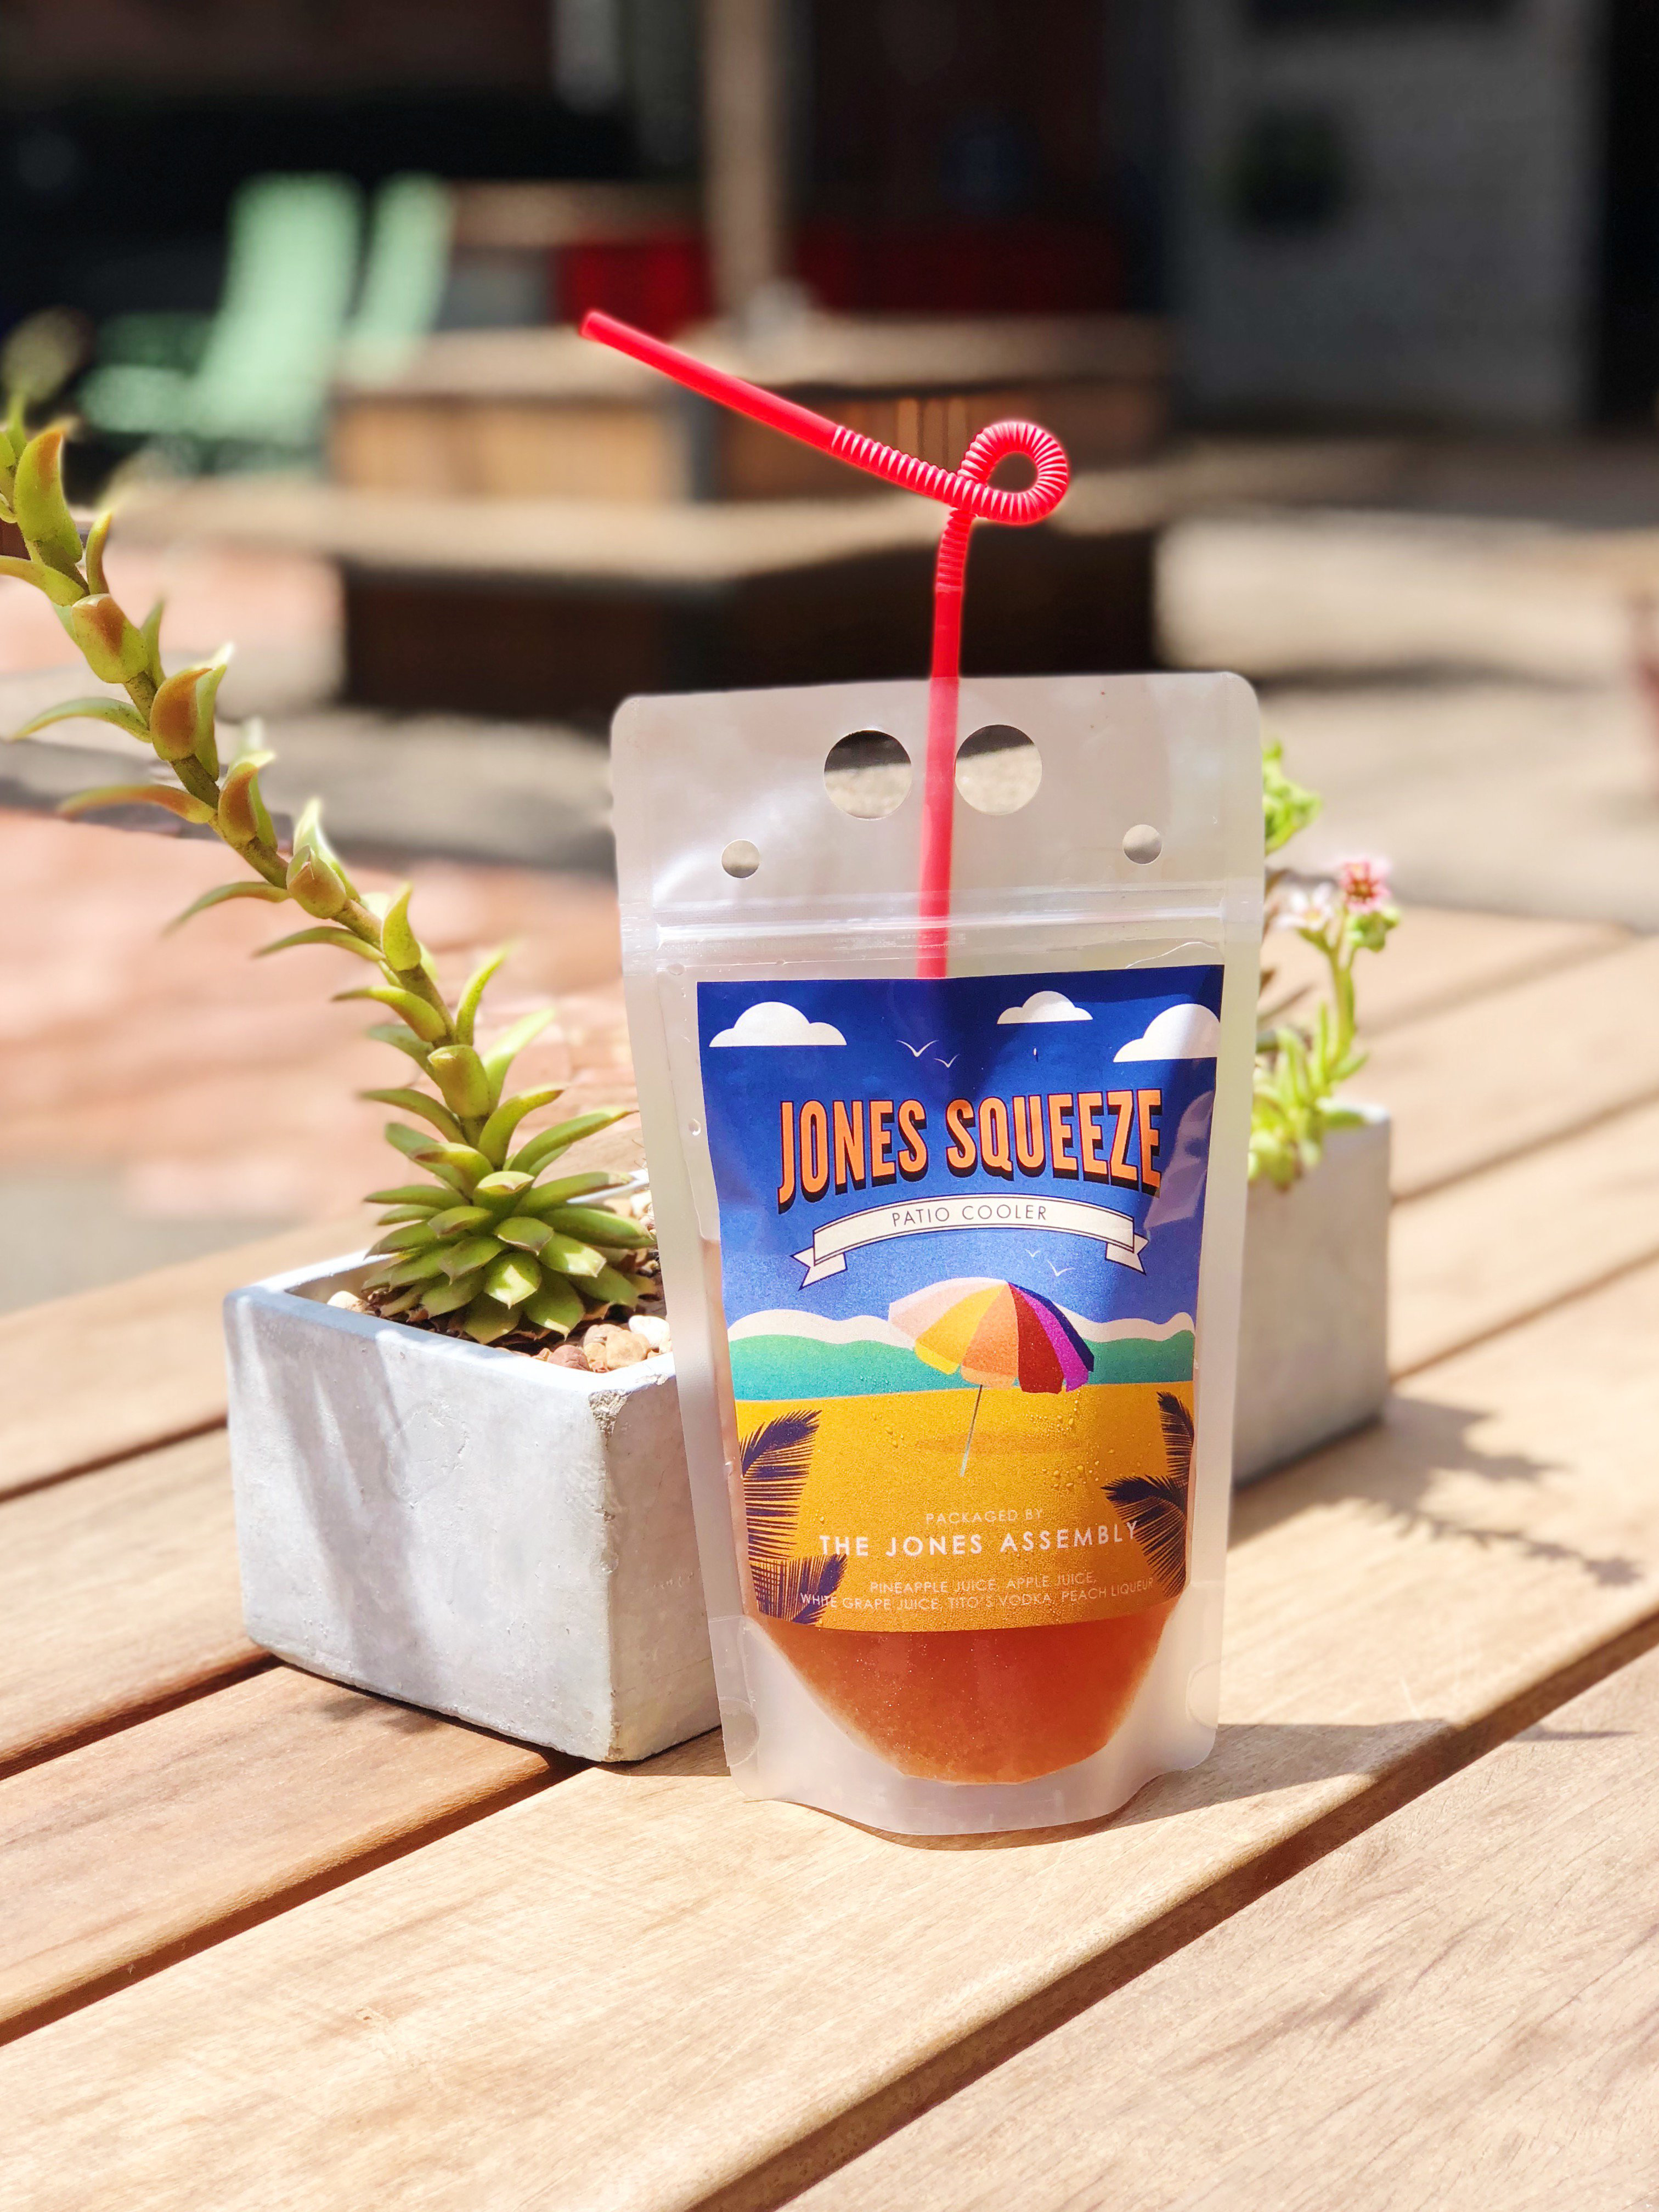 A juicebox with alcohol, a Capri Sun for adults